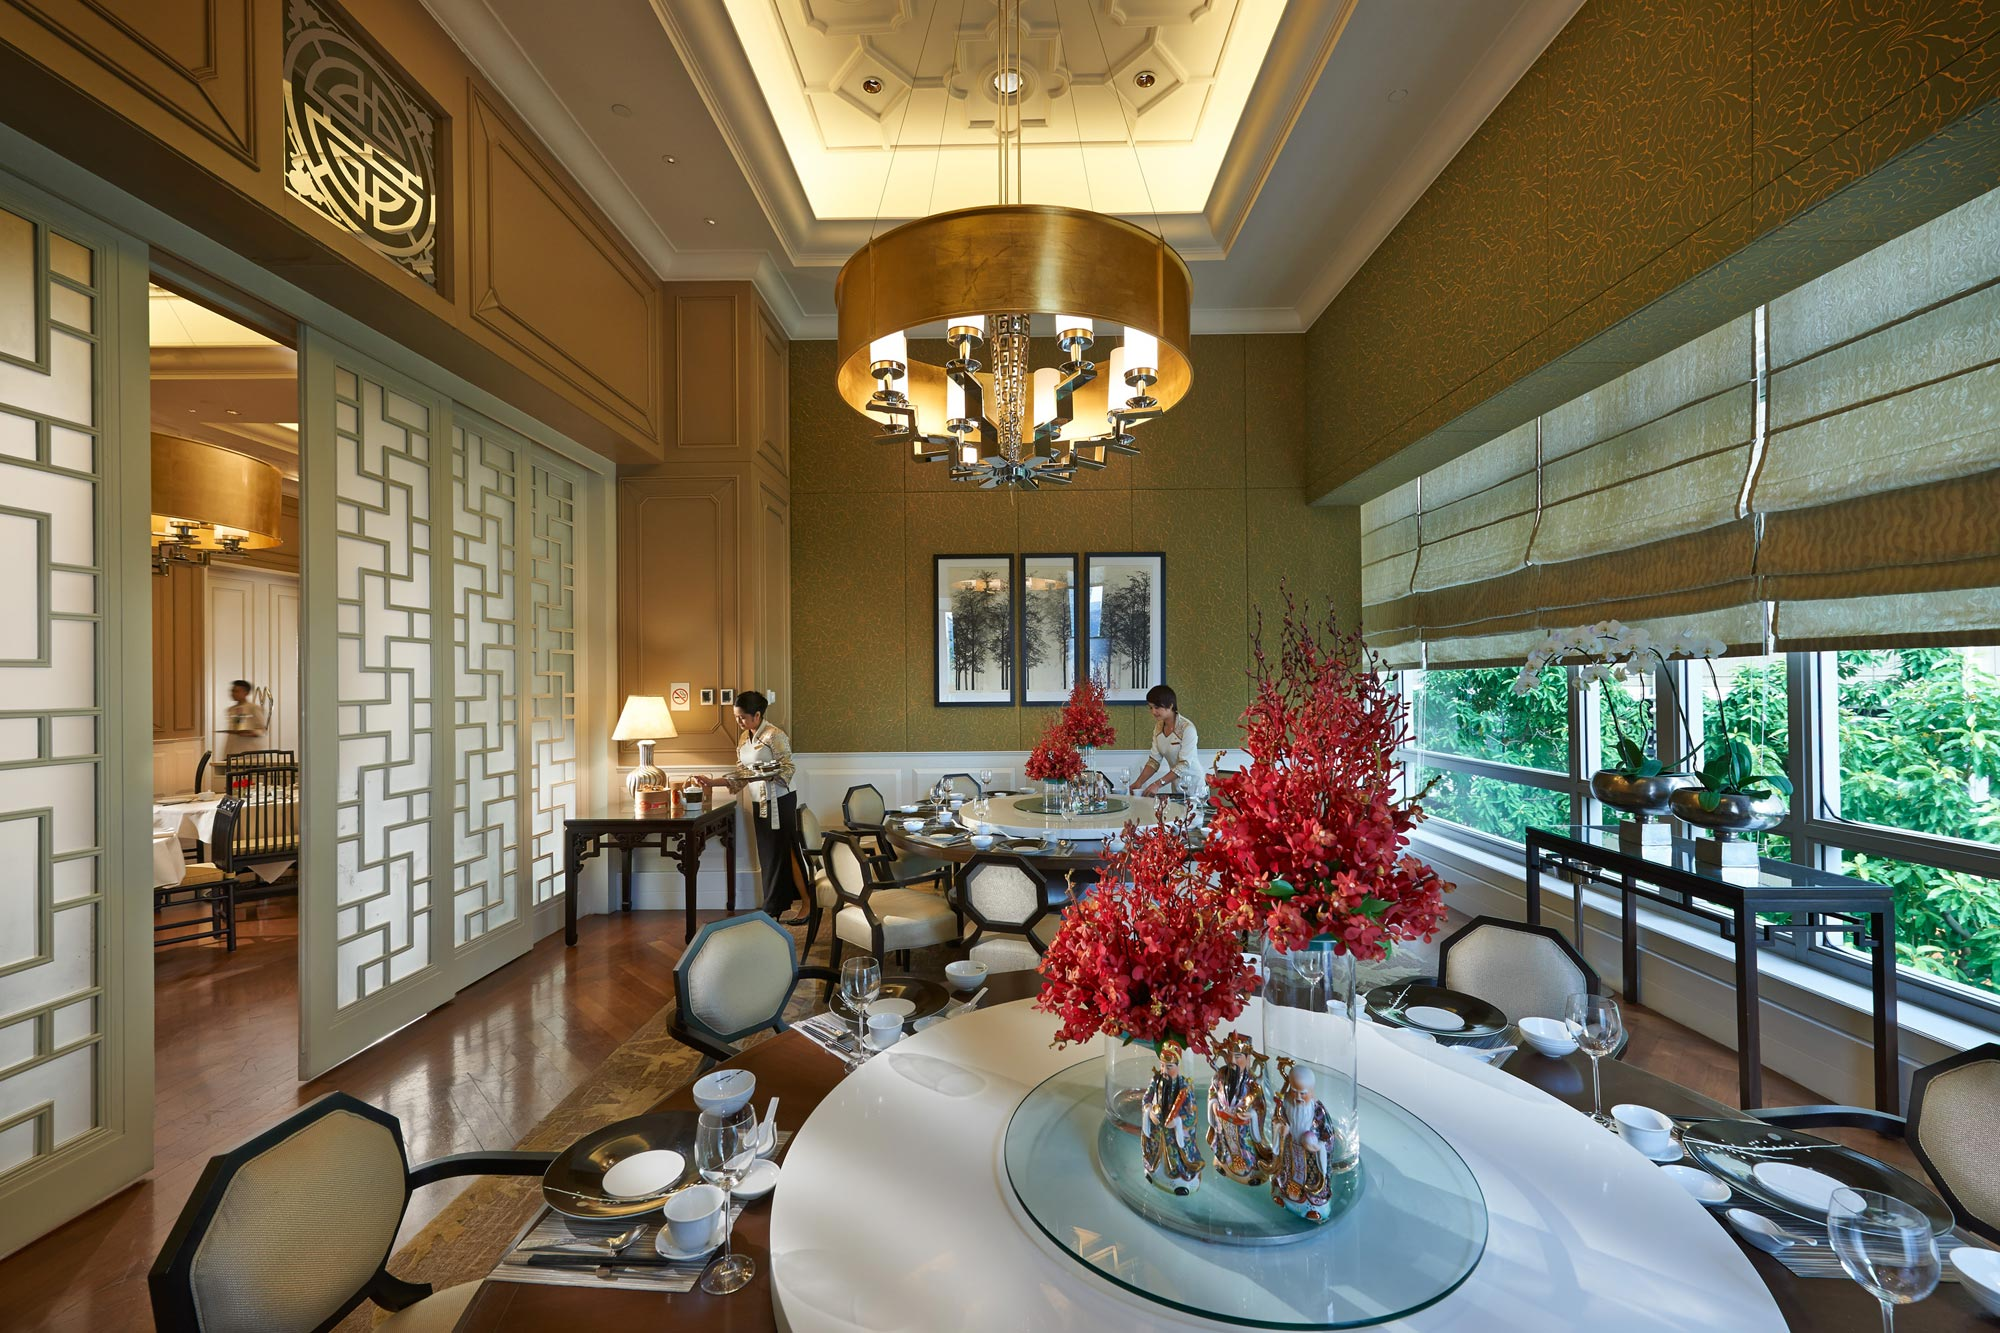 Review Of Lai Po Heen at the Mandarin Oriental Kuala Lumpur